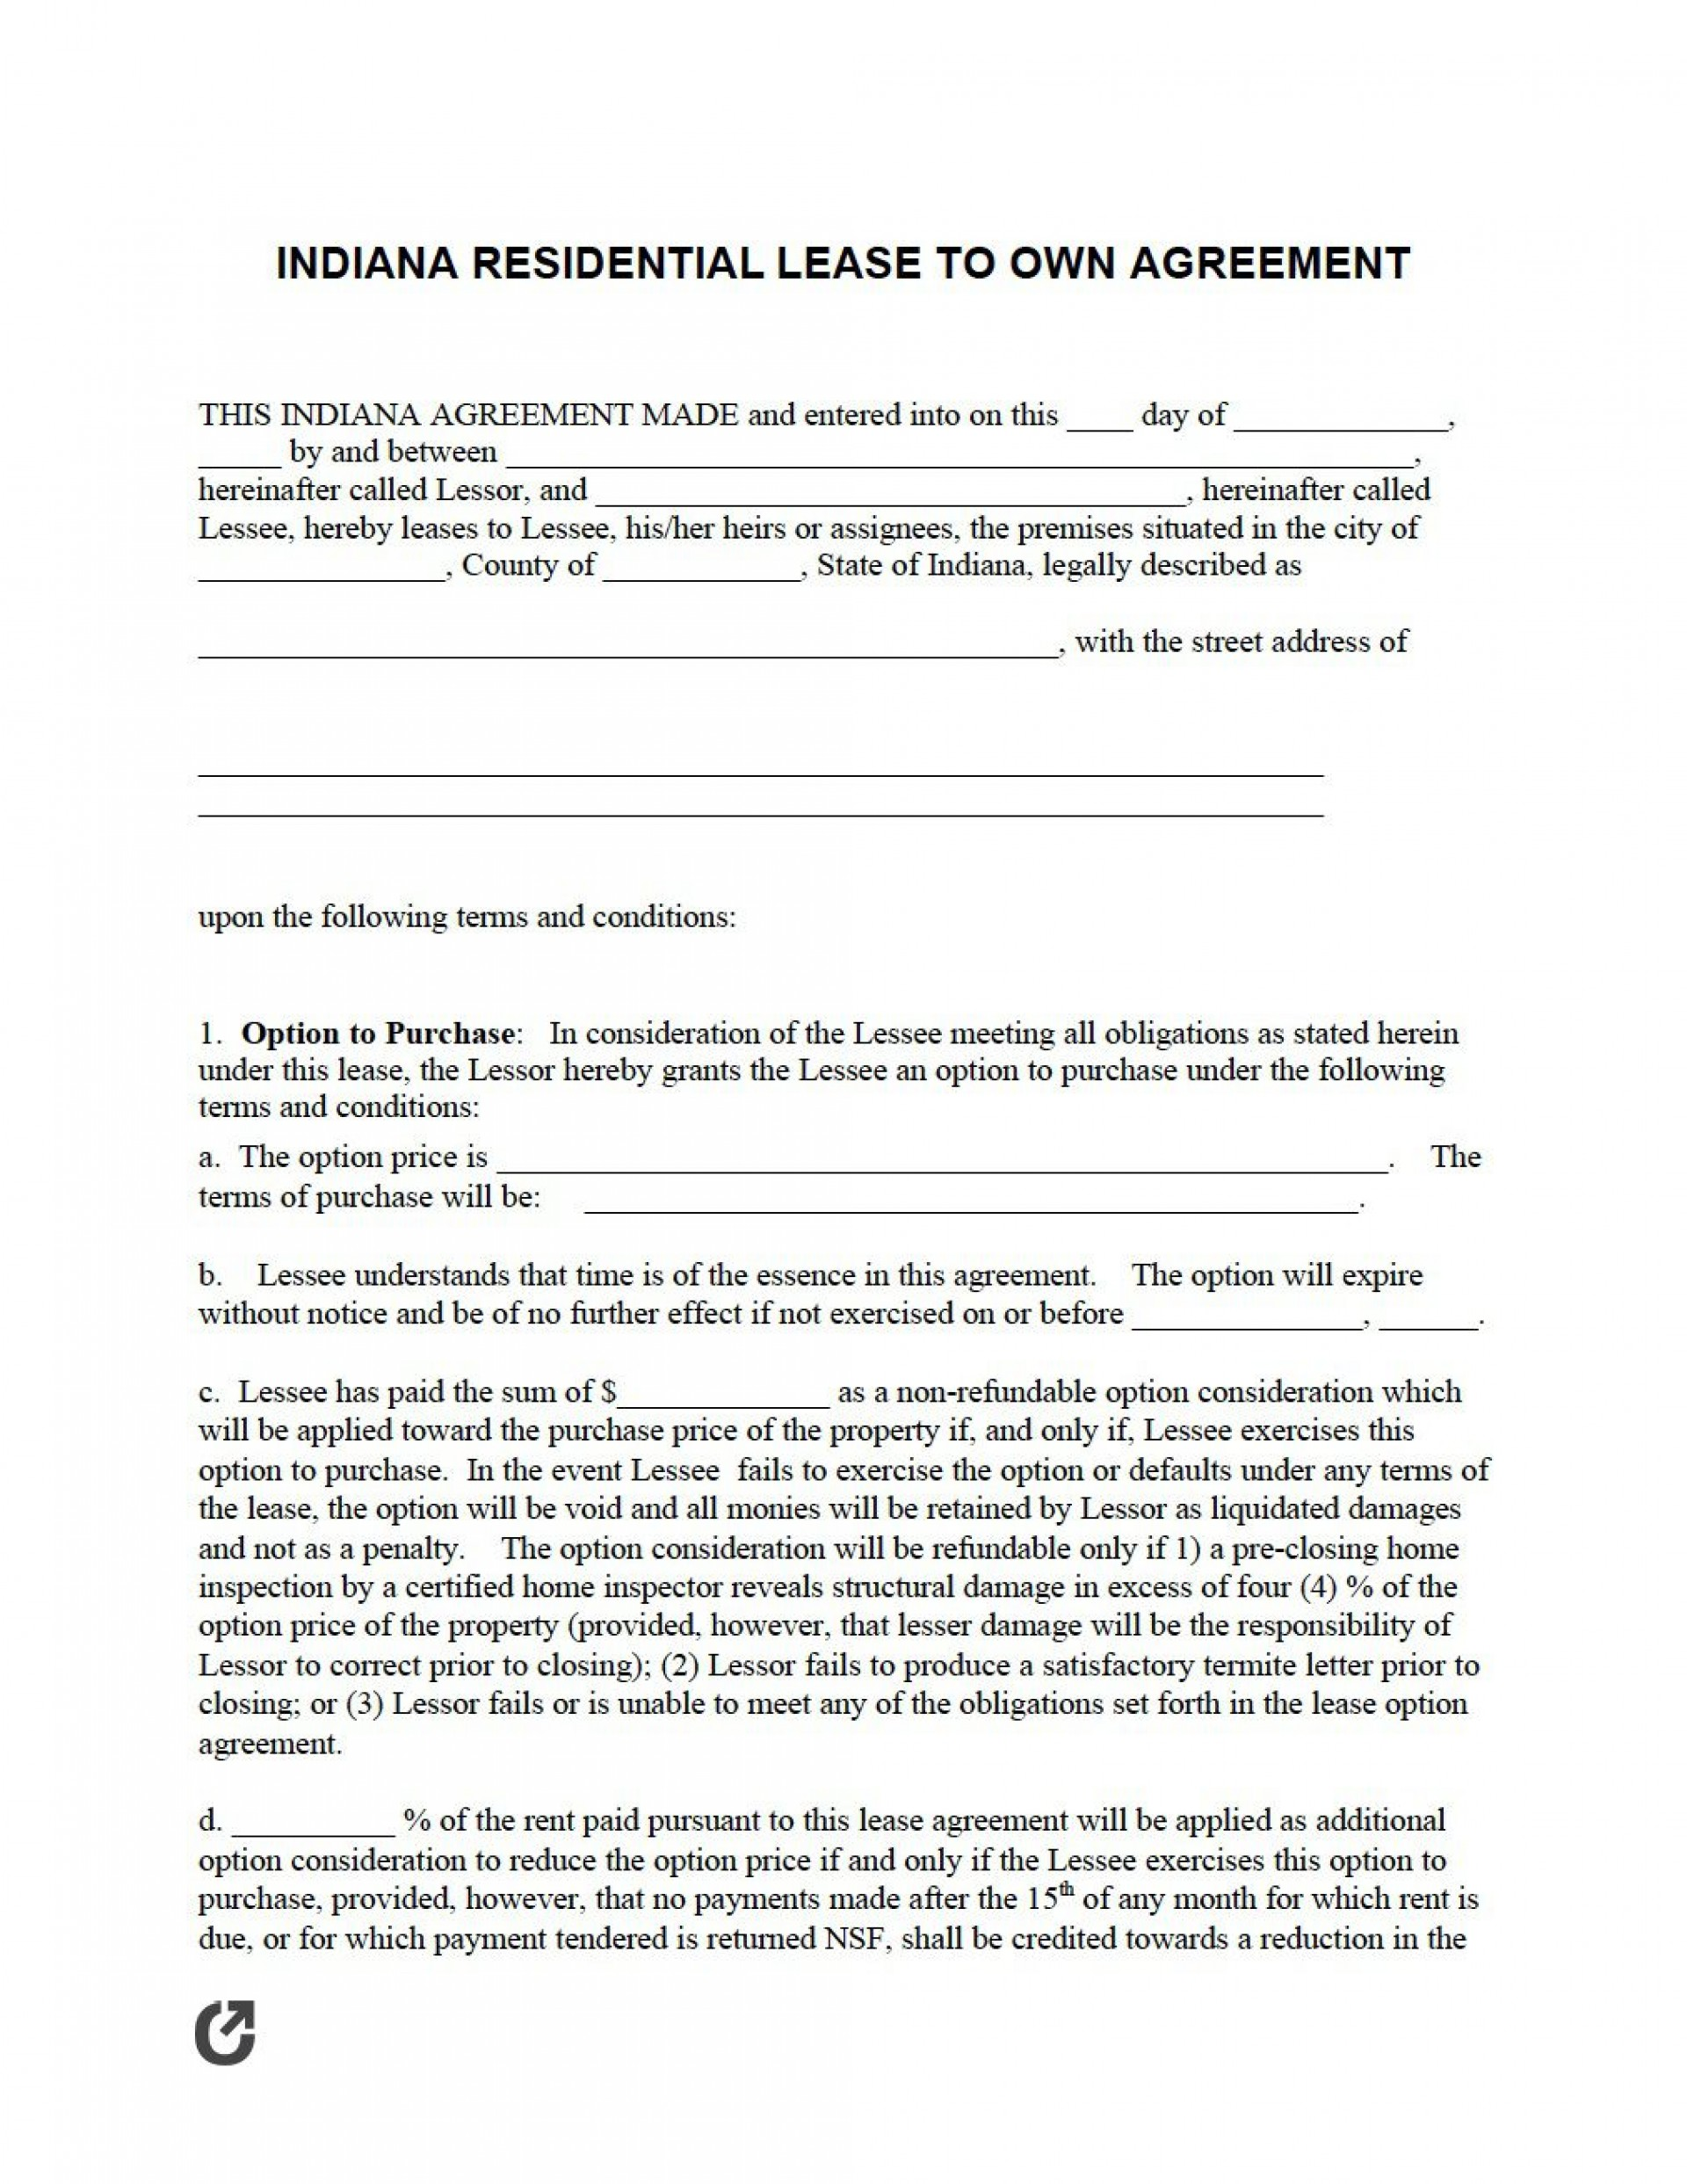 005 Magnificent Rent To Own Agreement Template Concept  Free Contract Canada South Africa Pdf1920